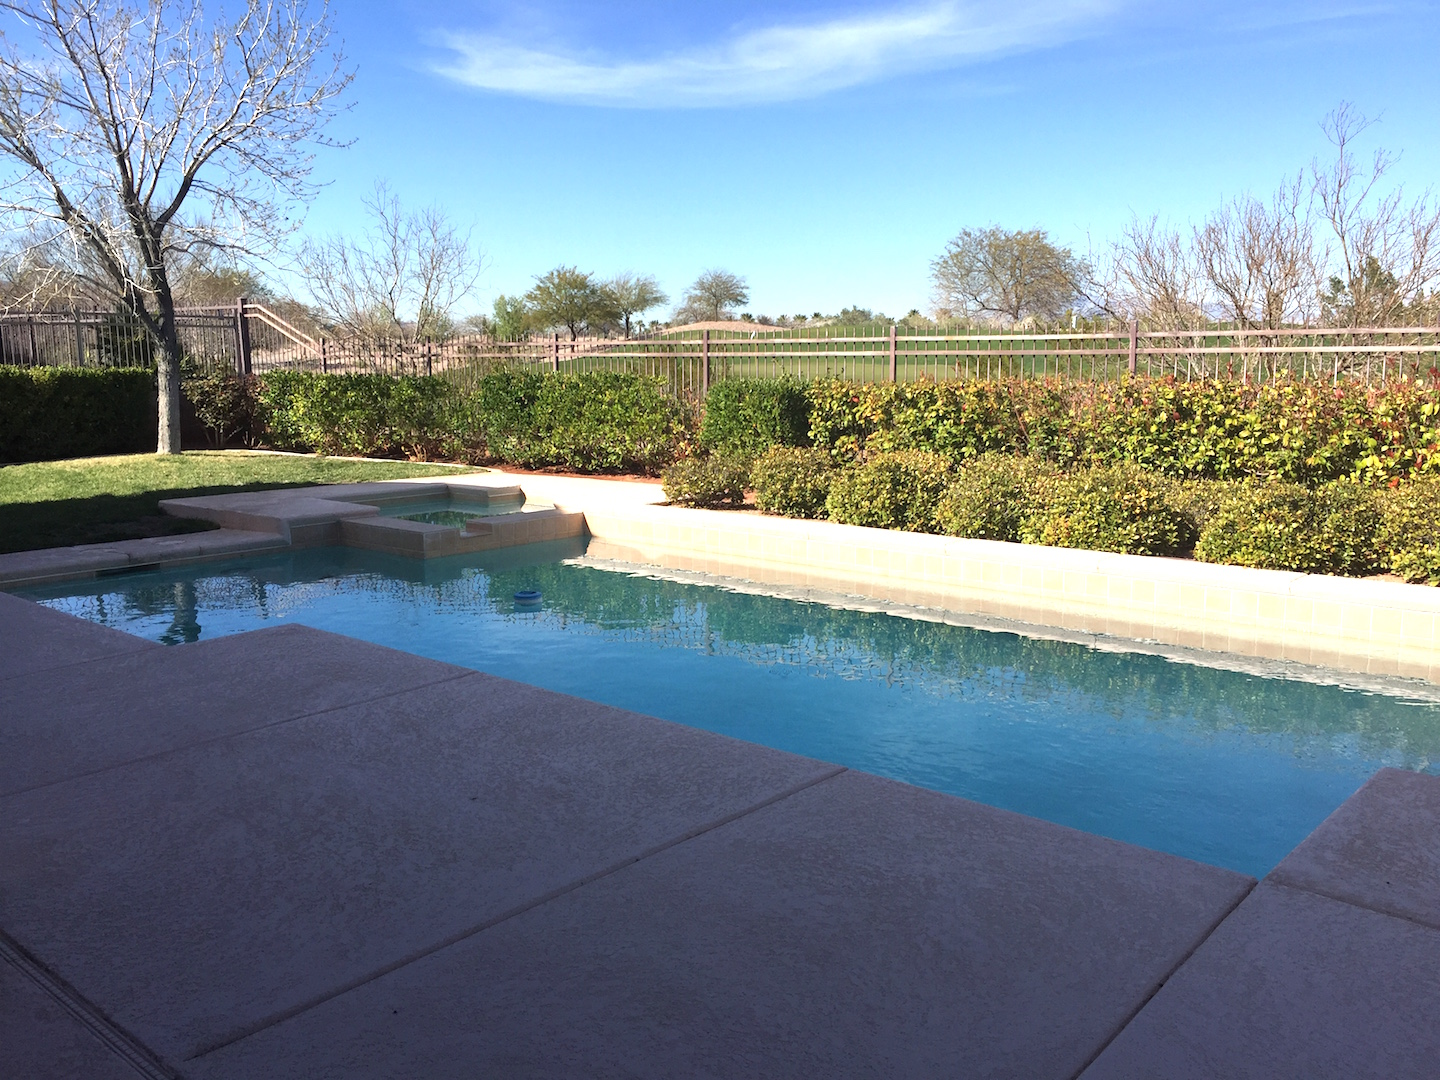 Las vegas luxury homes high rises canyon fairways pool for Home for sale in las vegas with pool